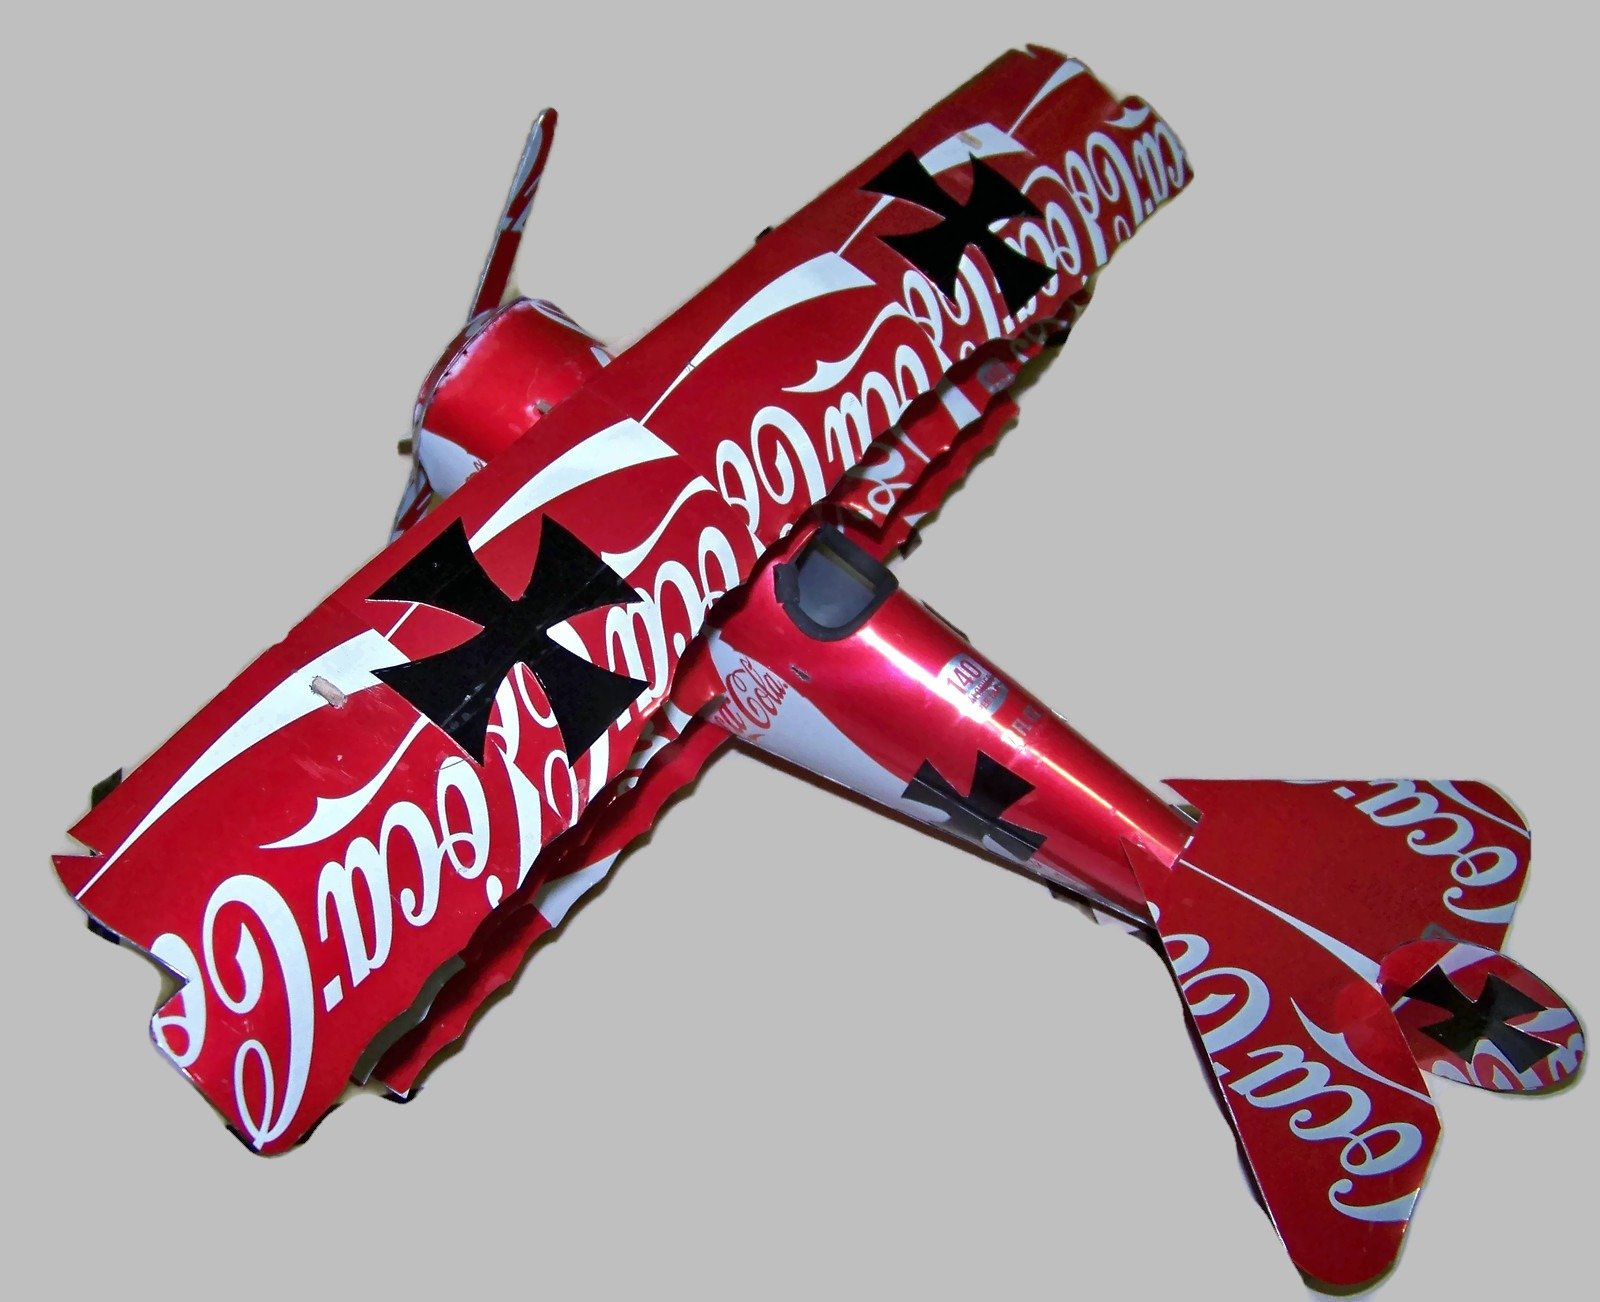 soda can airplane Red baron triplane